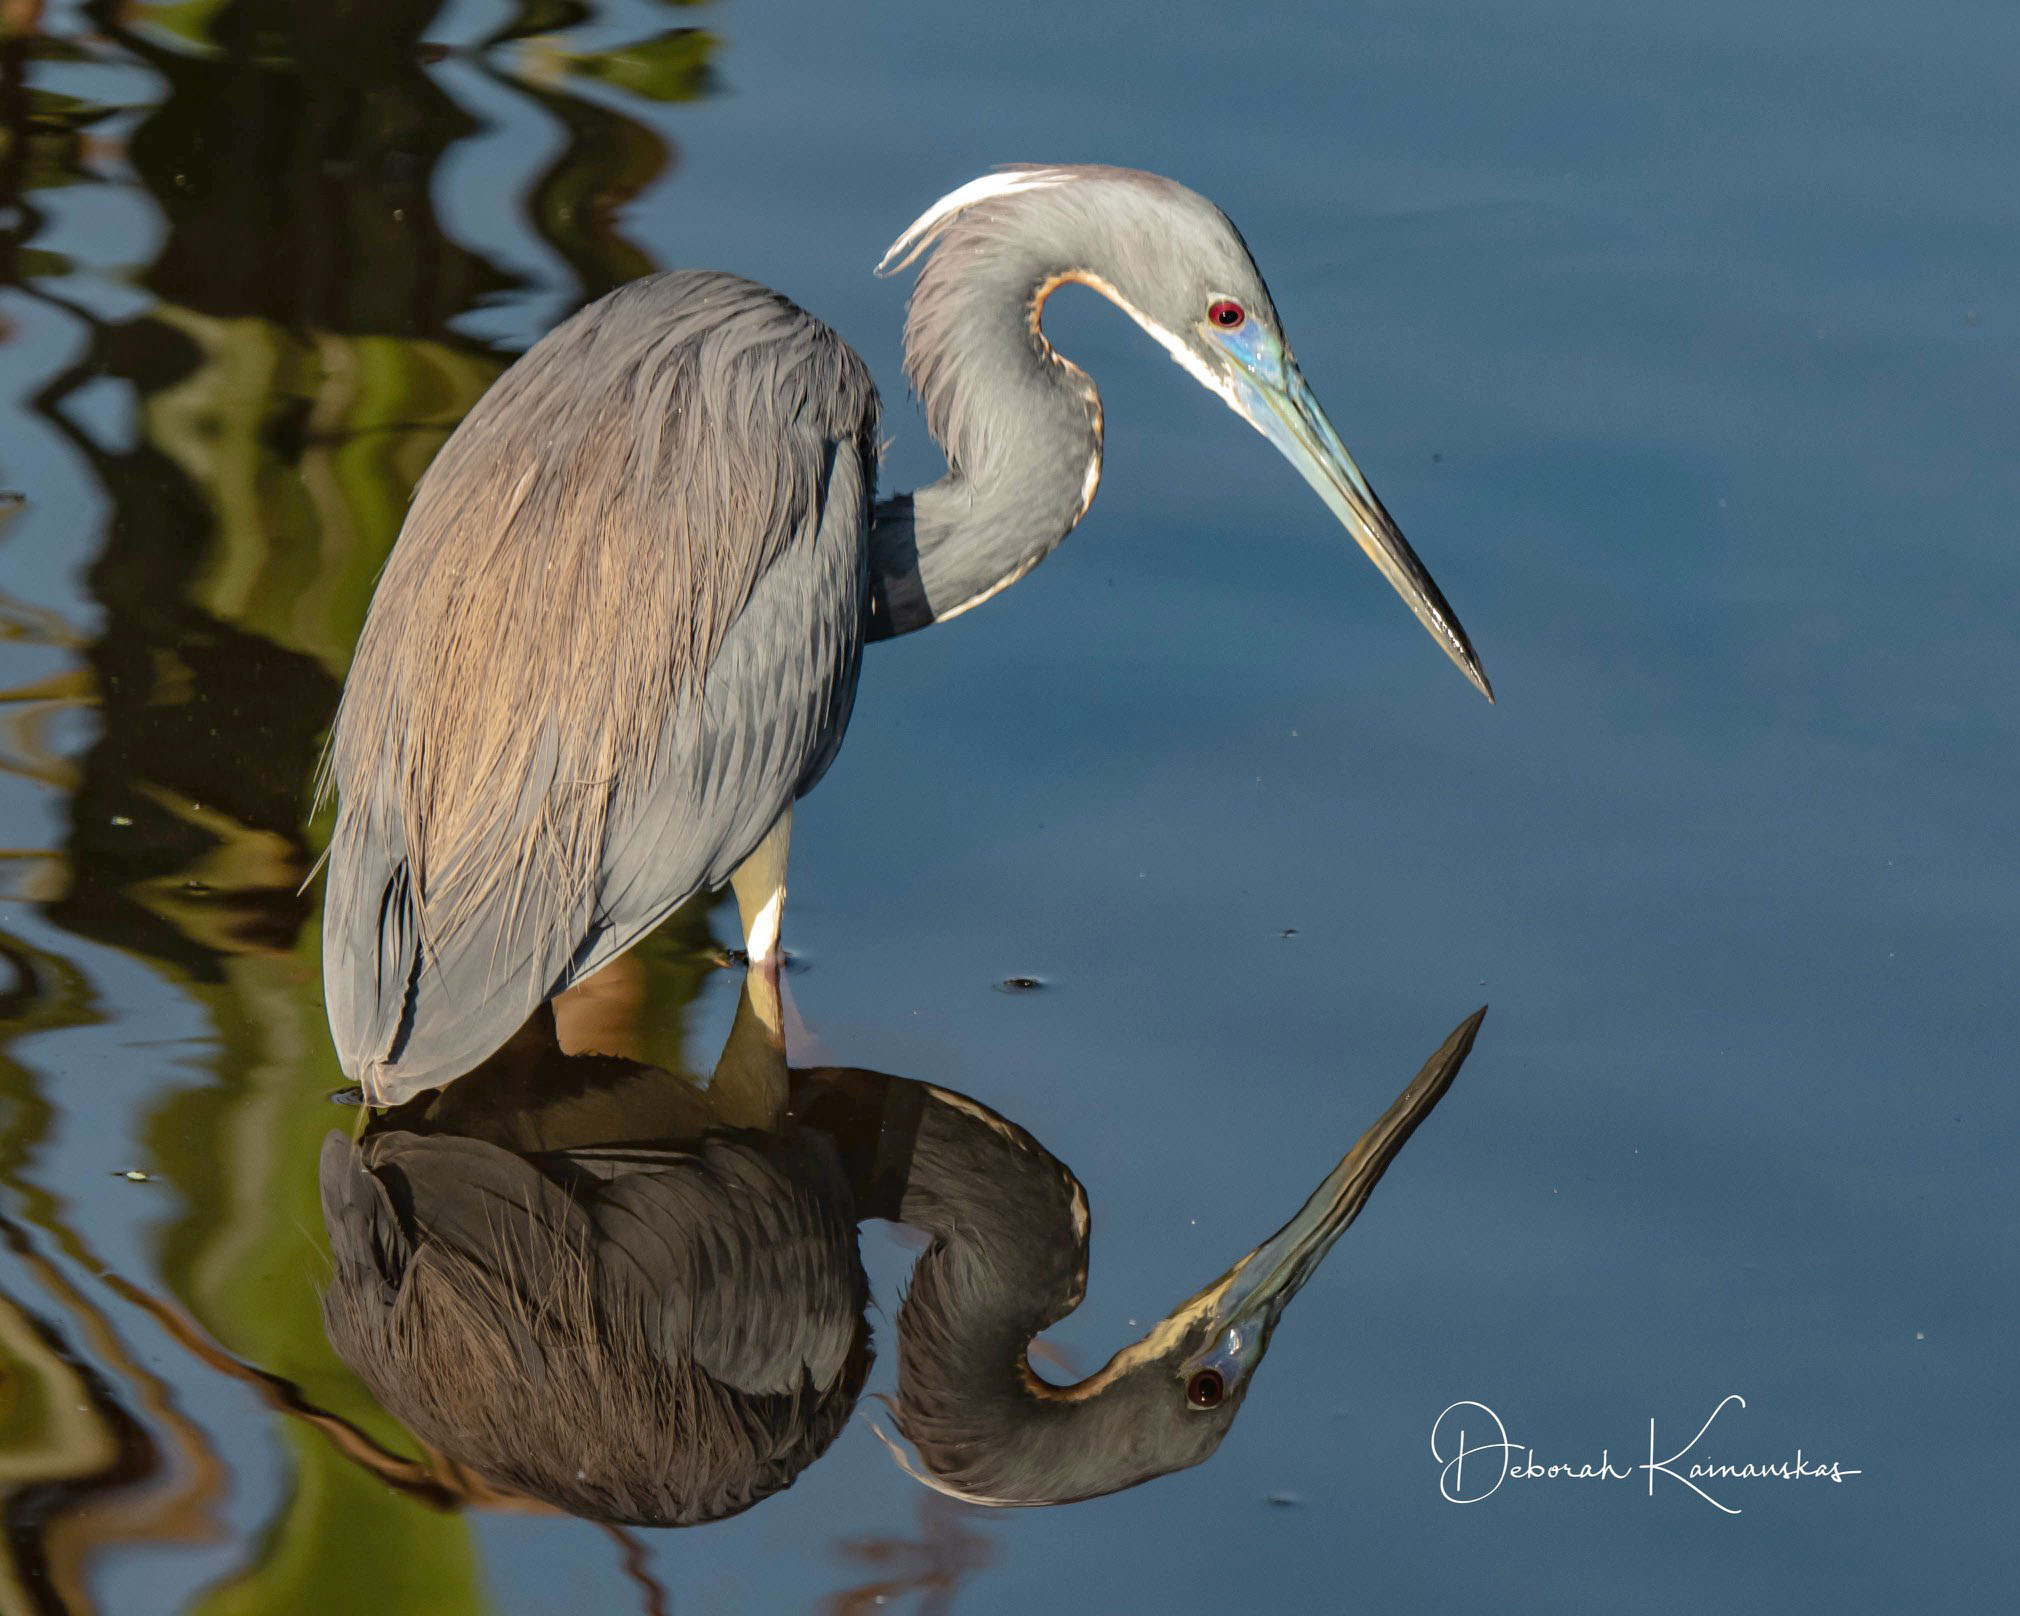 Photo of a Tricolored Heron by Deborah Kainauskas